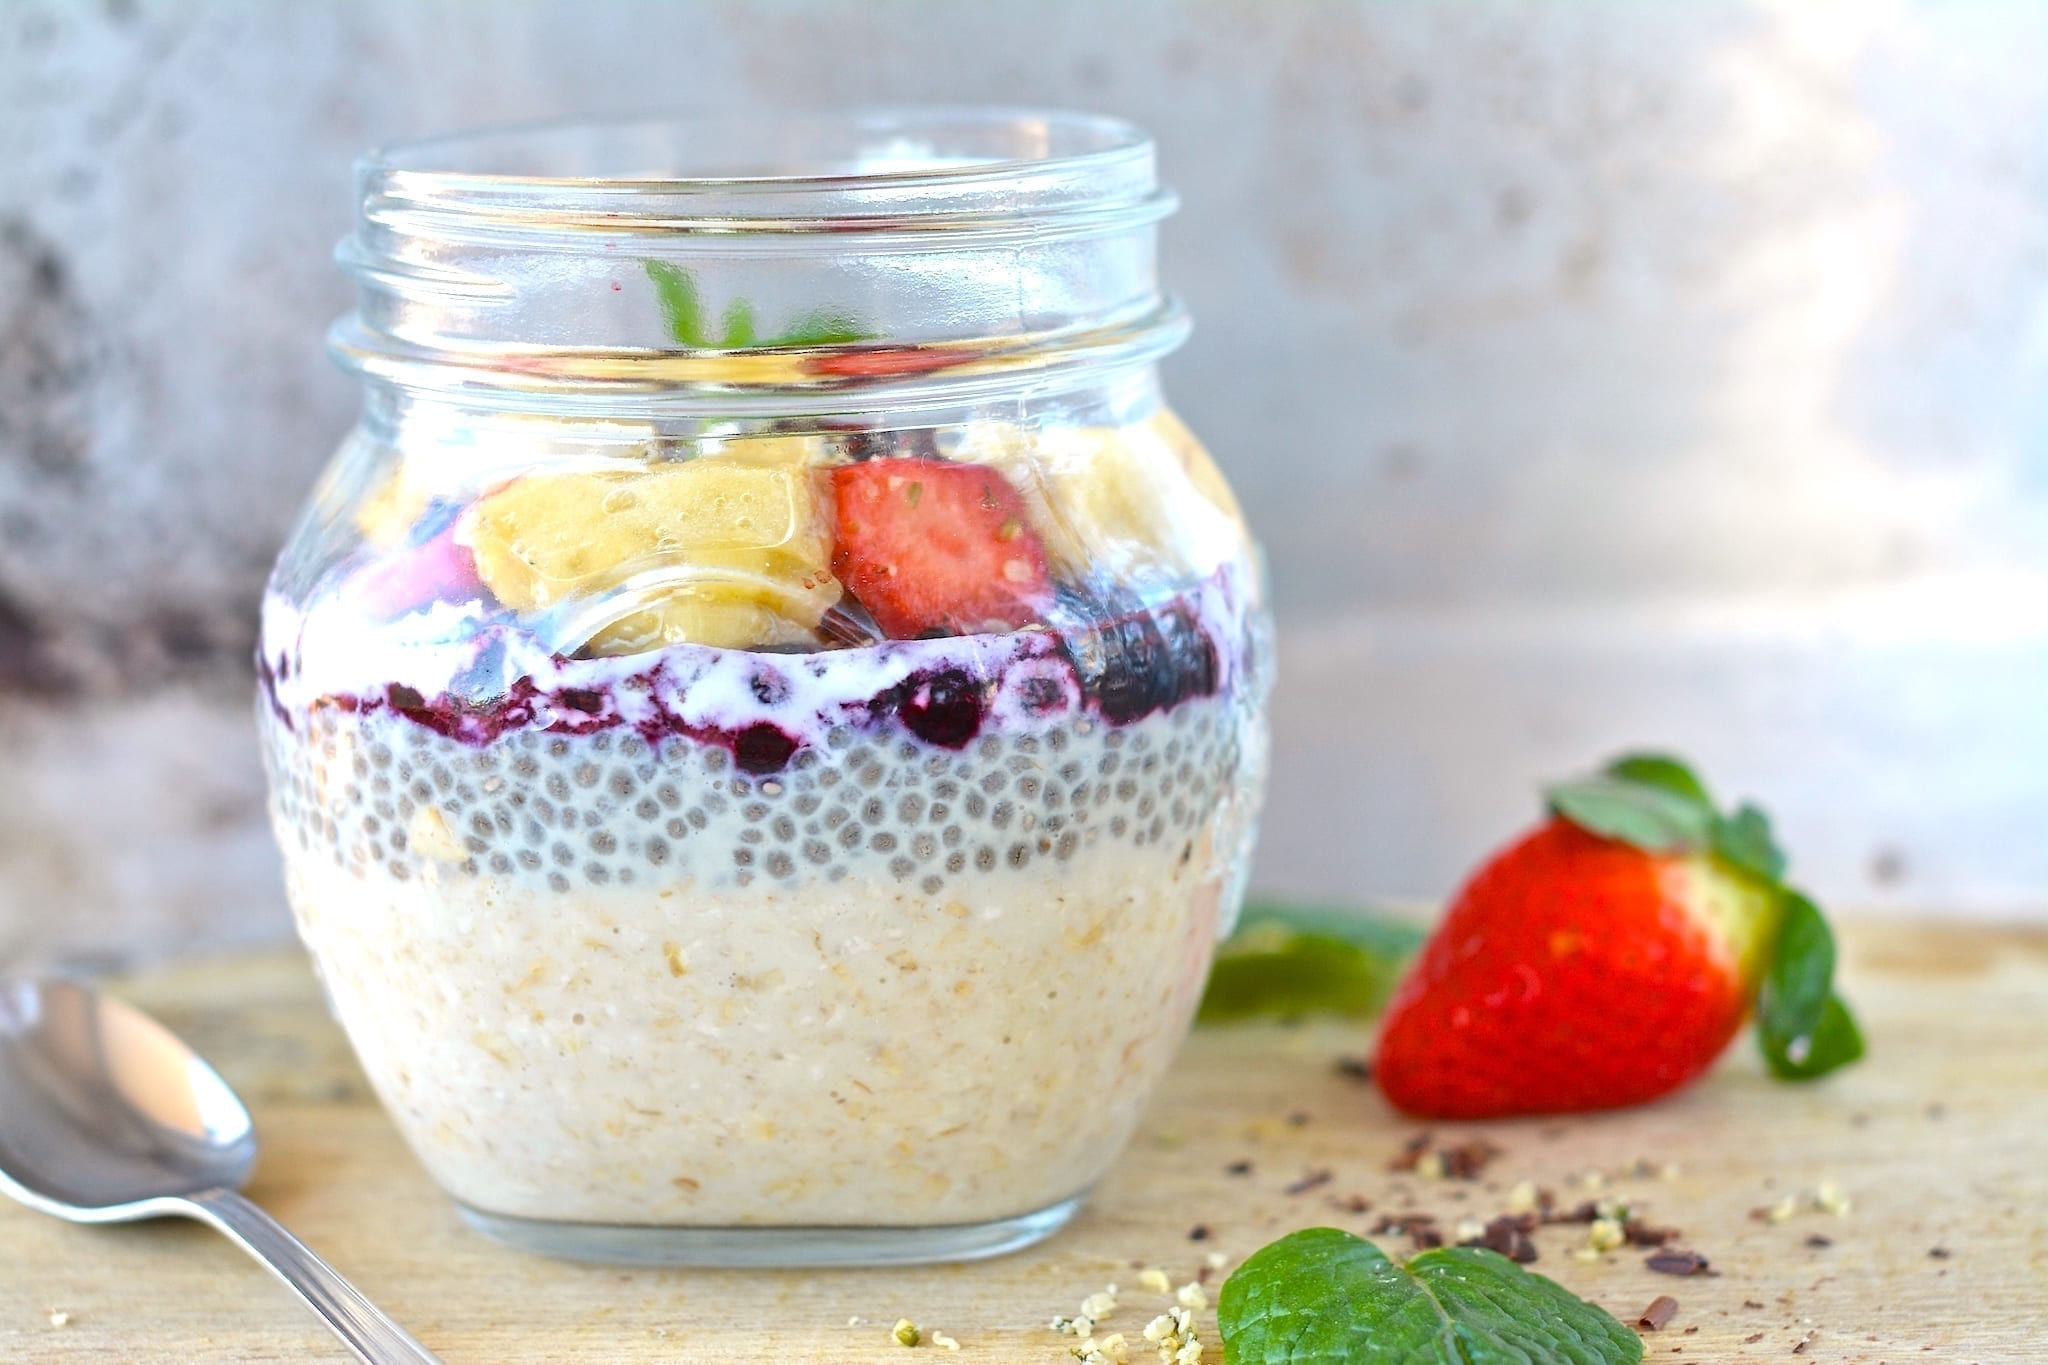 Oatmeal in jar